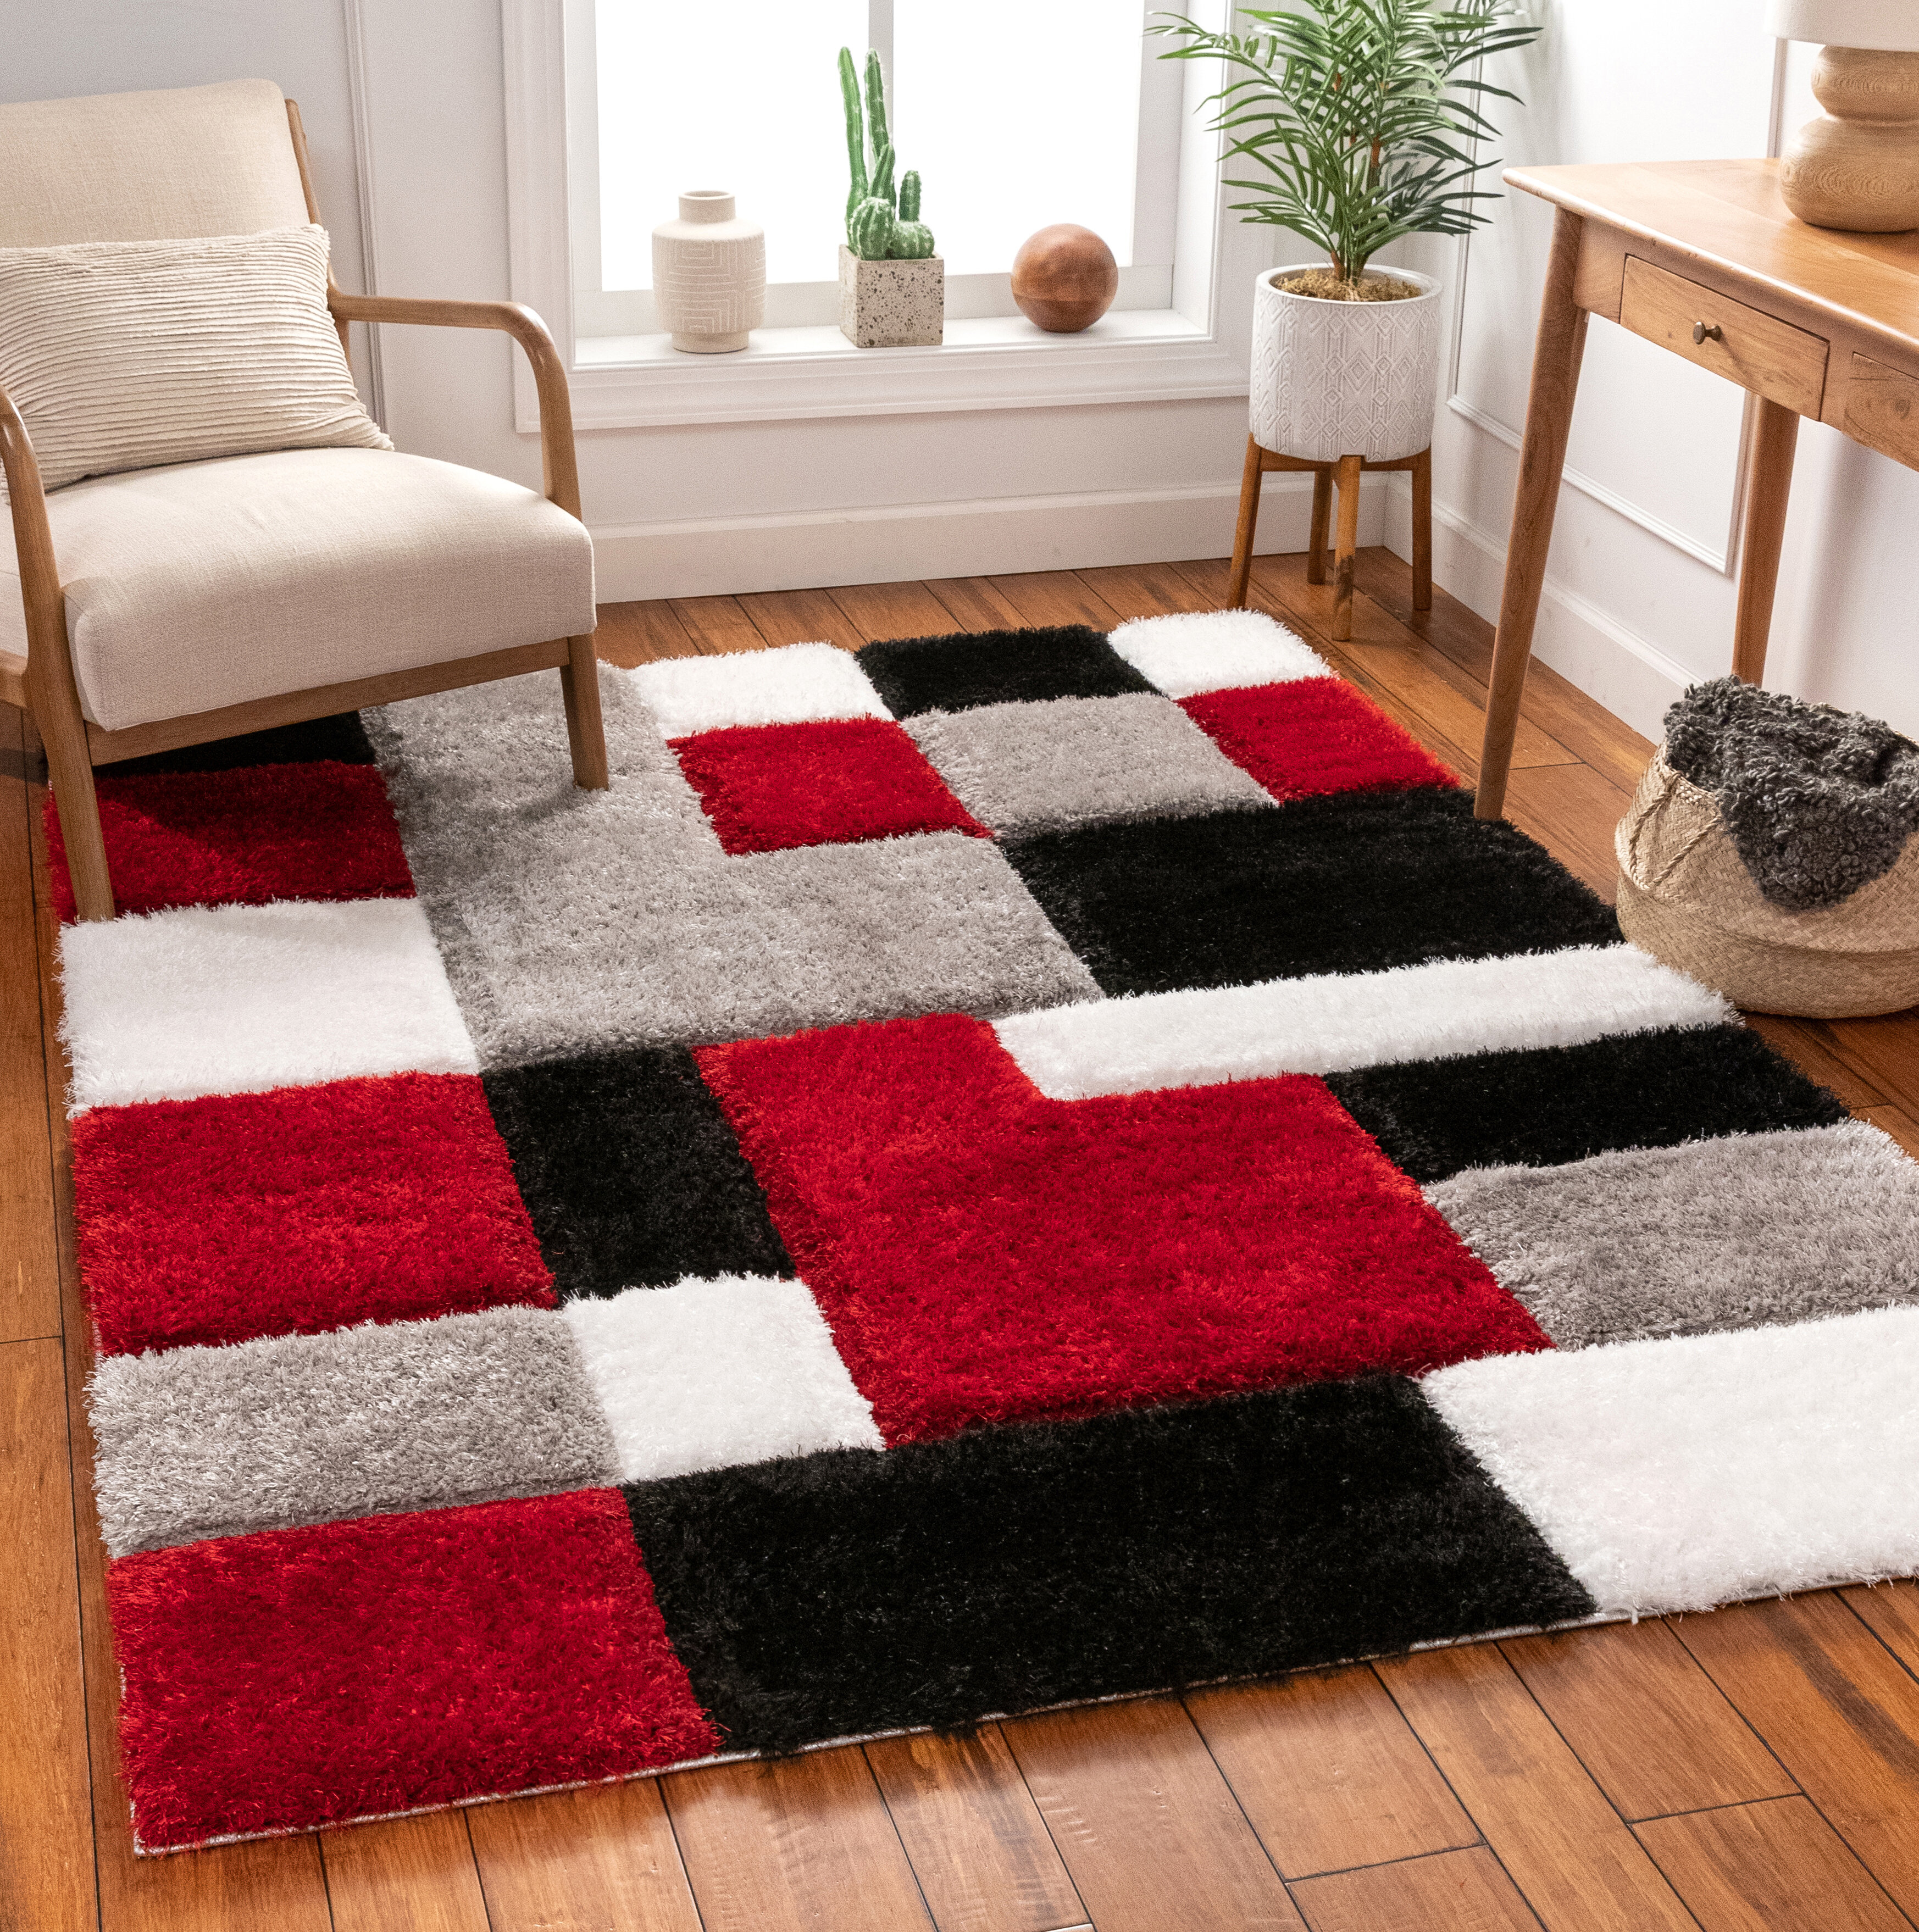 Well Woven San Francisco Shag Red Black Area Rug Reviews Wayfair